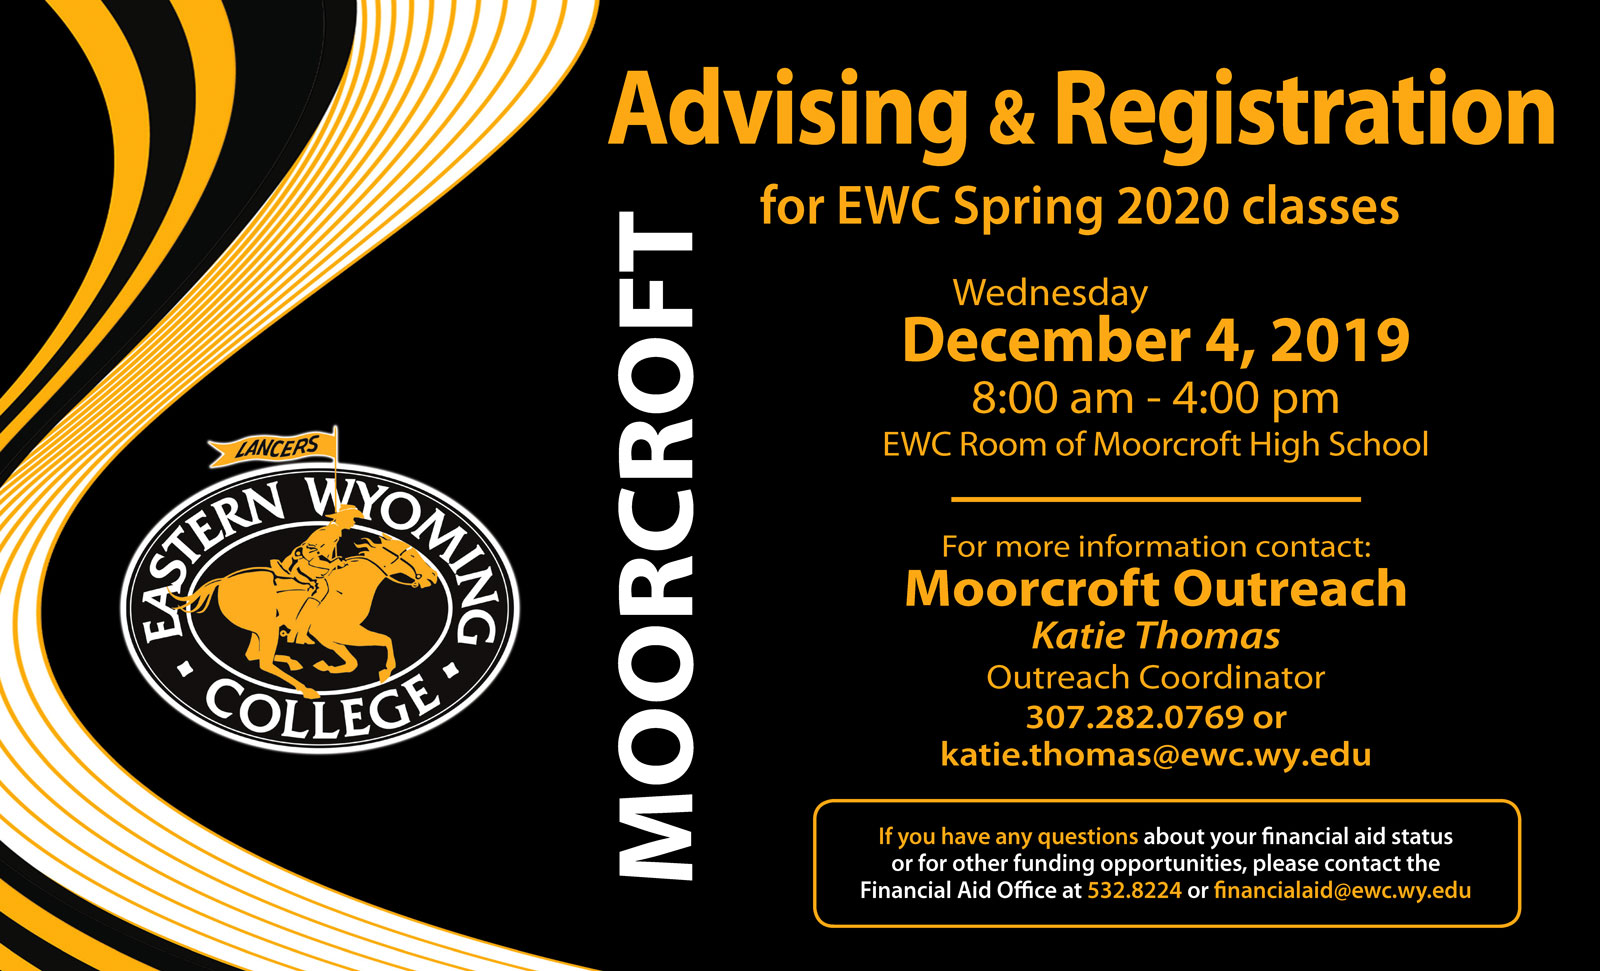 Advising & Registration for EWC Spring 2020 classes